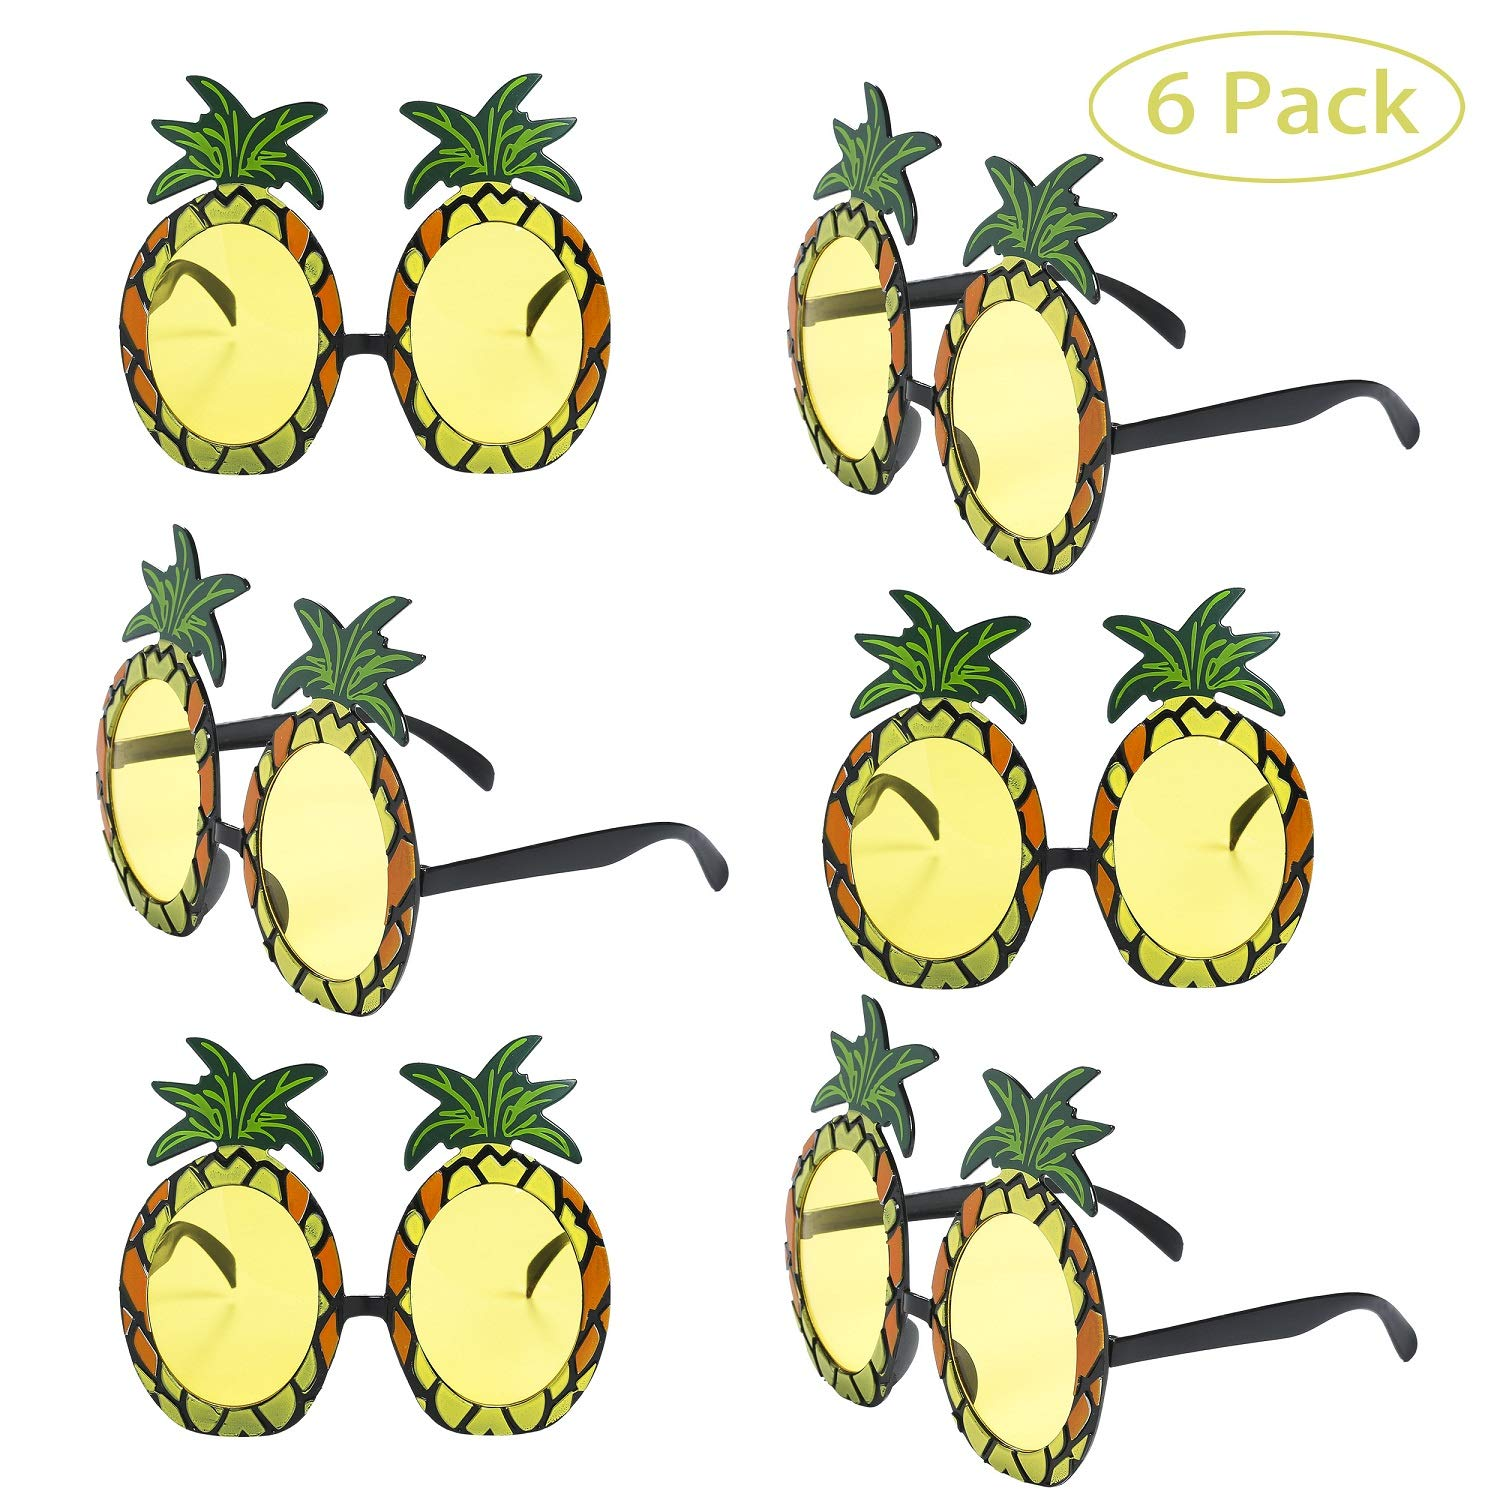 Peirich 6 Pairs Pineapple Sunglasses Fun Party Eyeglasses for Hawaiian Photo Props Costume Fancy Dress Party Supplies